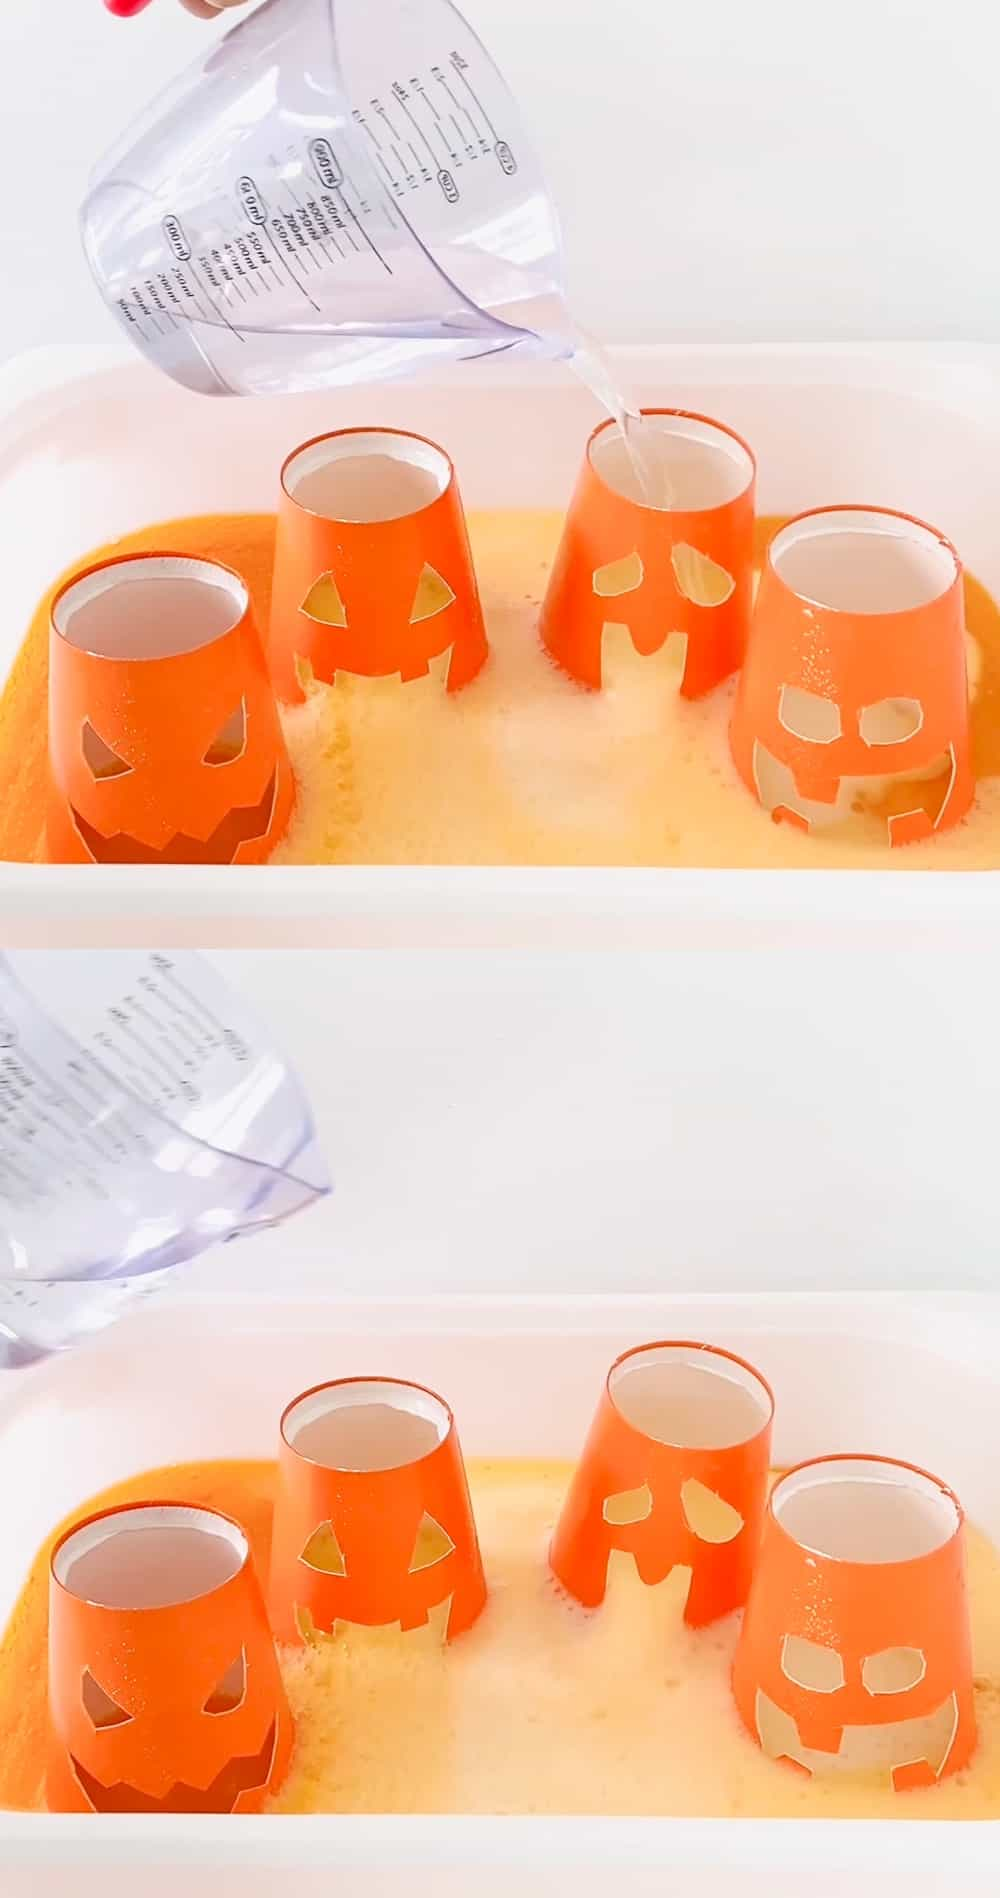 Pumpkin Baking Soda Vinegar Science Experiment. Use cups and carve out Jack O'Lantern faces to do this classic Halloween science project.